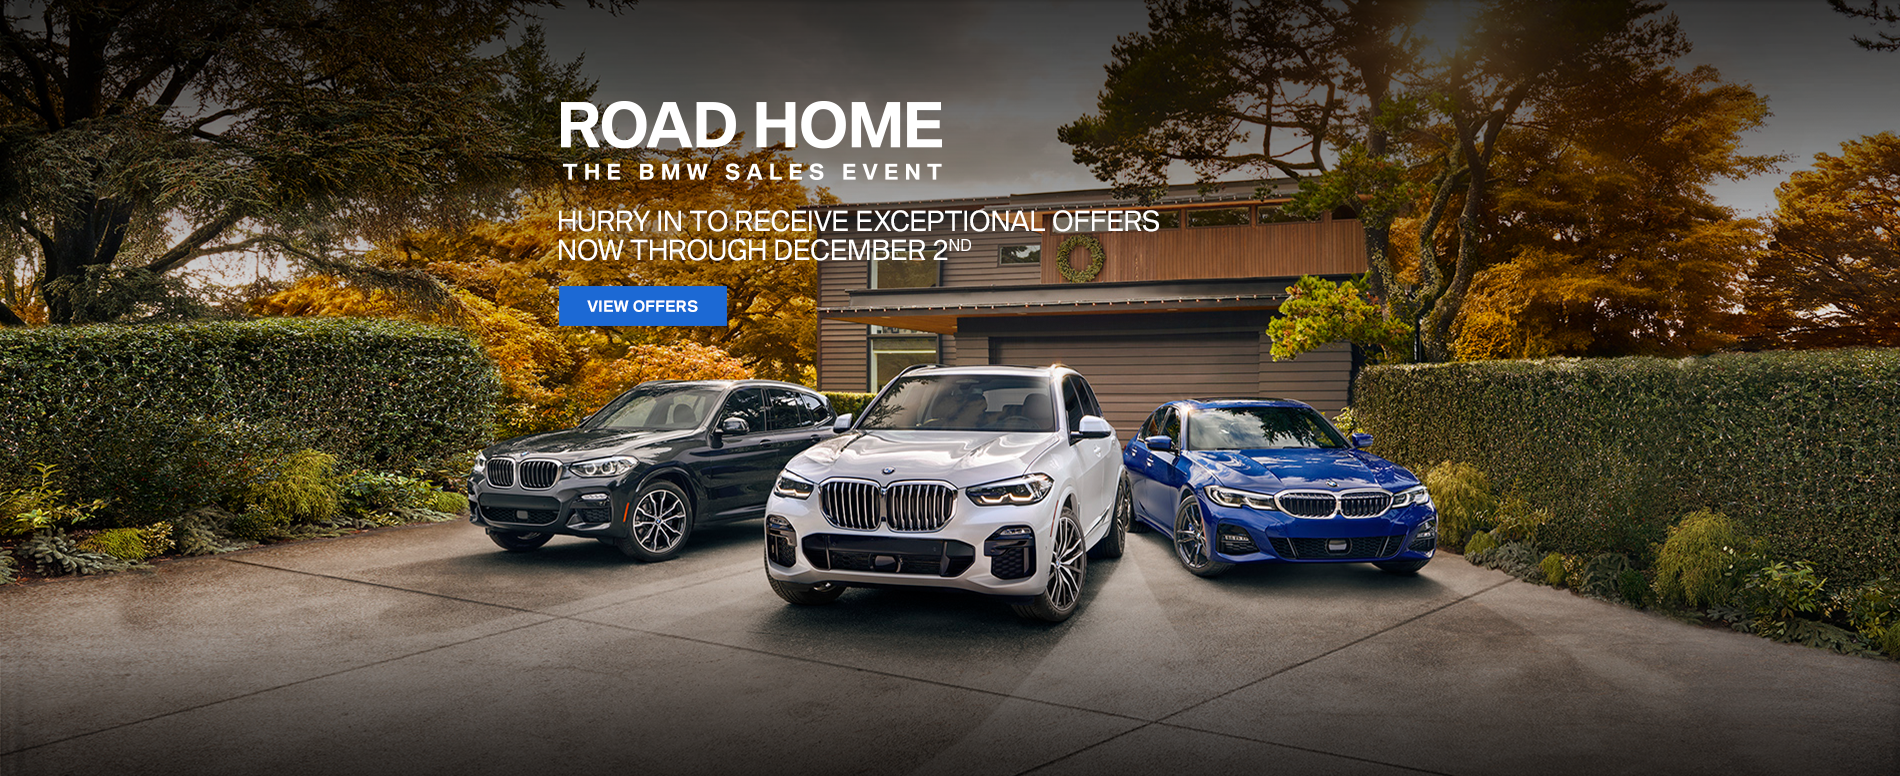 FMA1_PUSH_BMW_Road_Home_Sales_Event_Generic